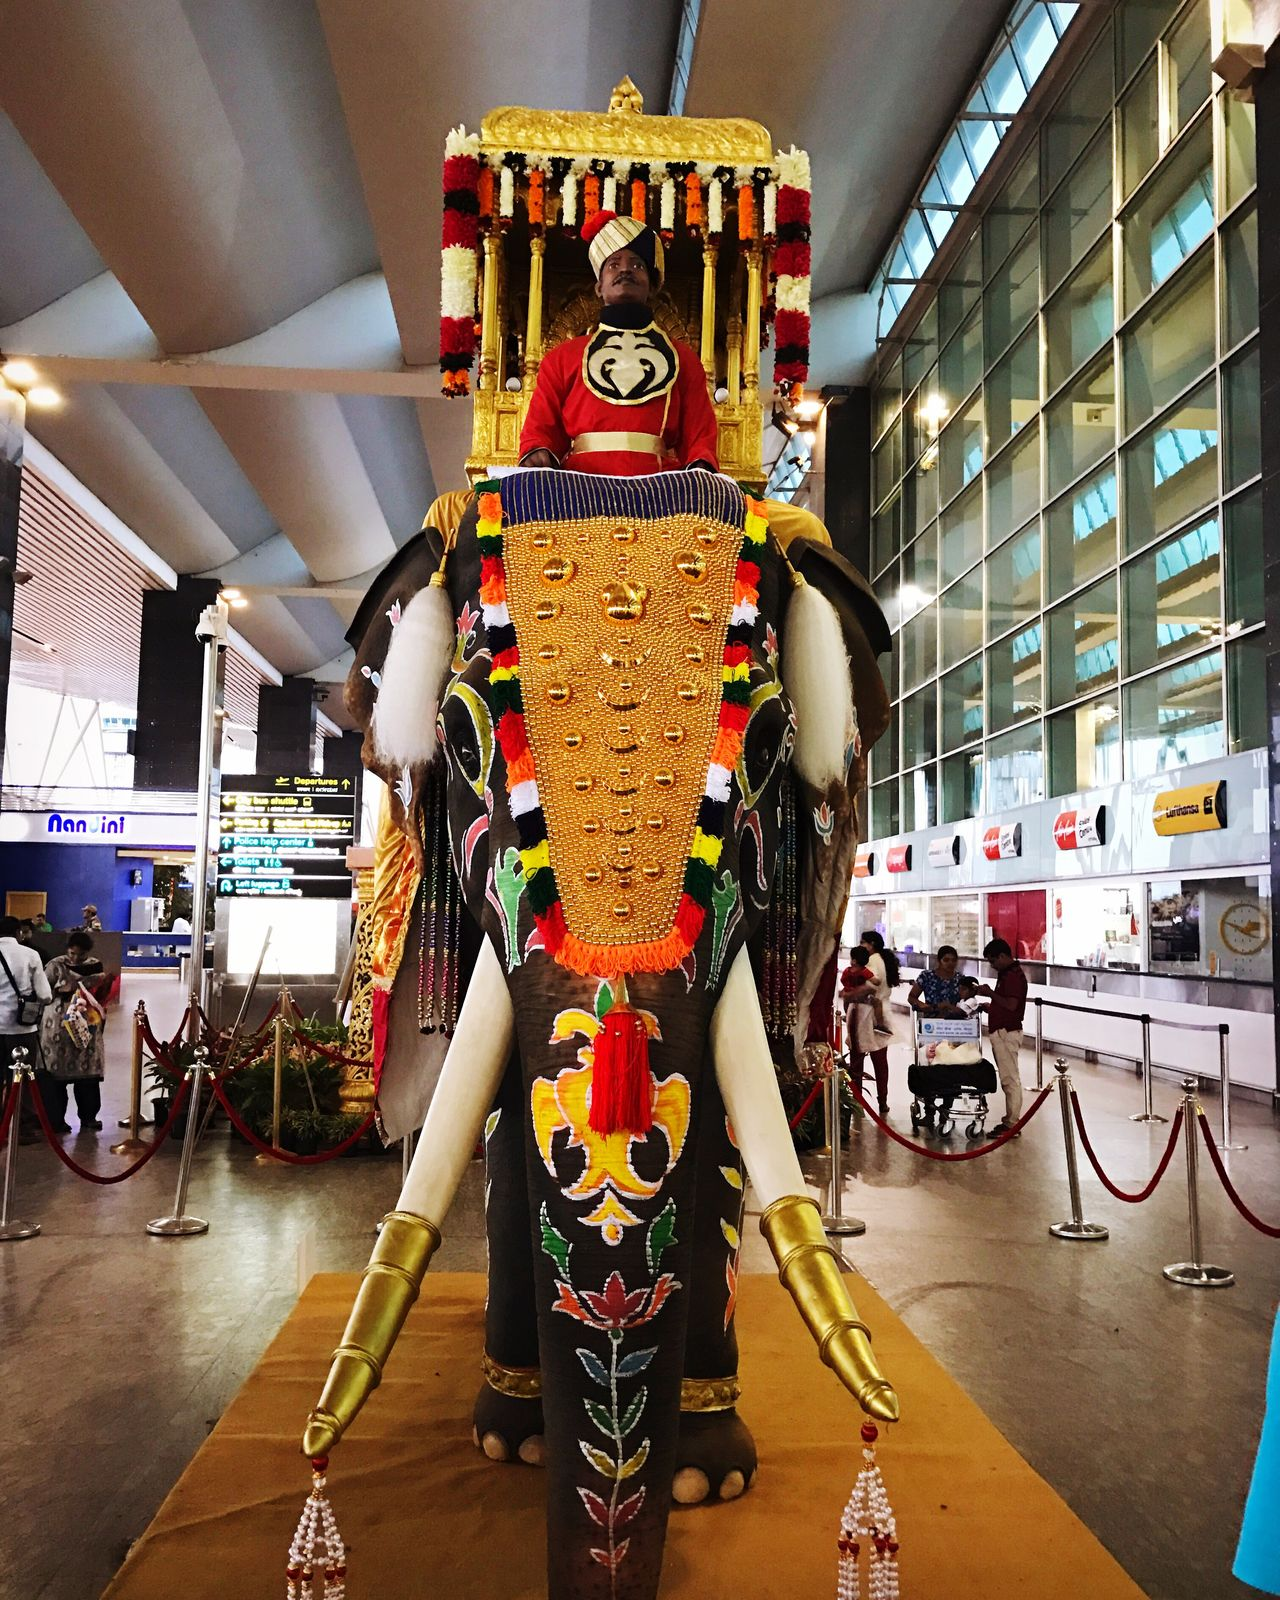 Incredible Art Installation at Bangalore Airport to announce the arrival of the festive season. Great details on the IPhone7Plus camera!